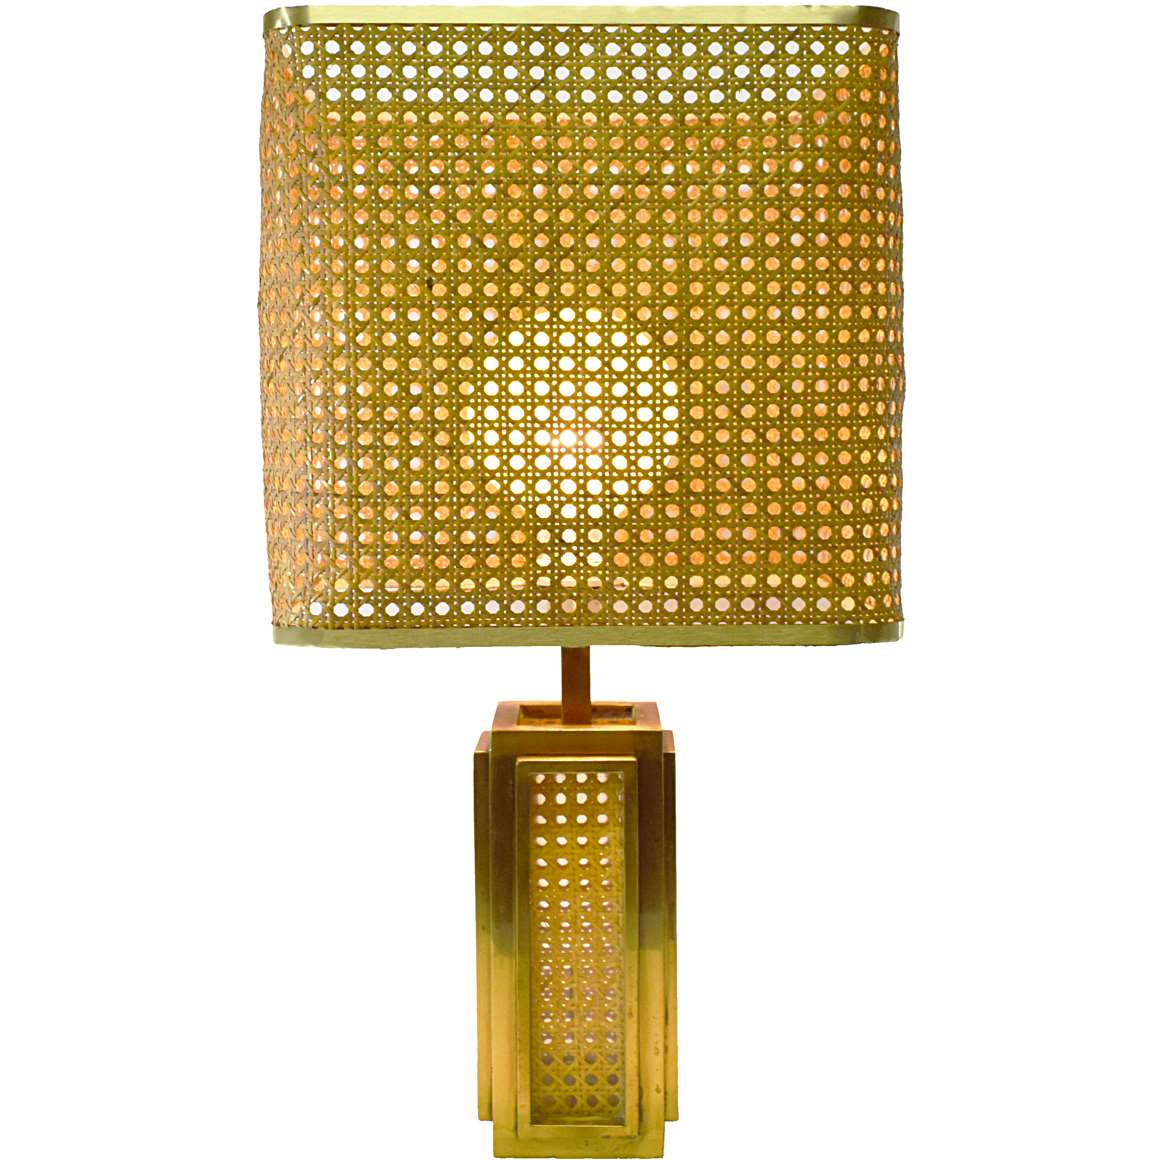 Italian Brass Amp Cane Table Lamp Vintage Info All About